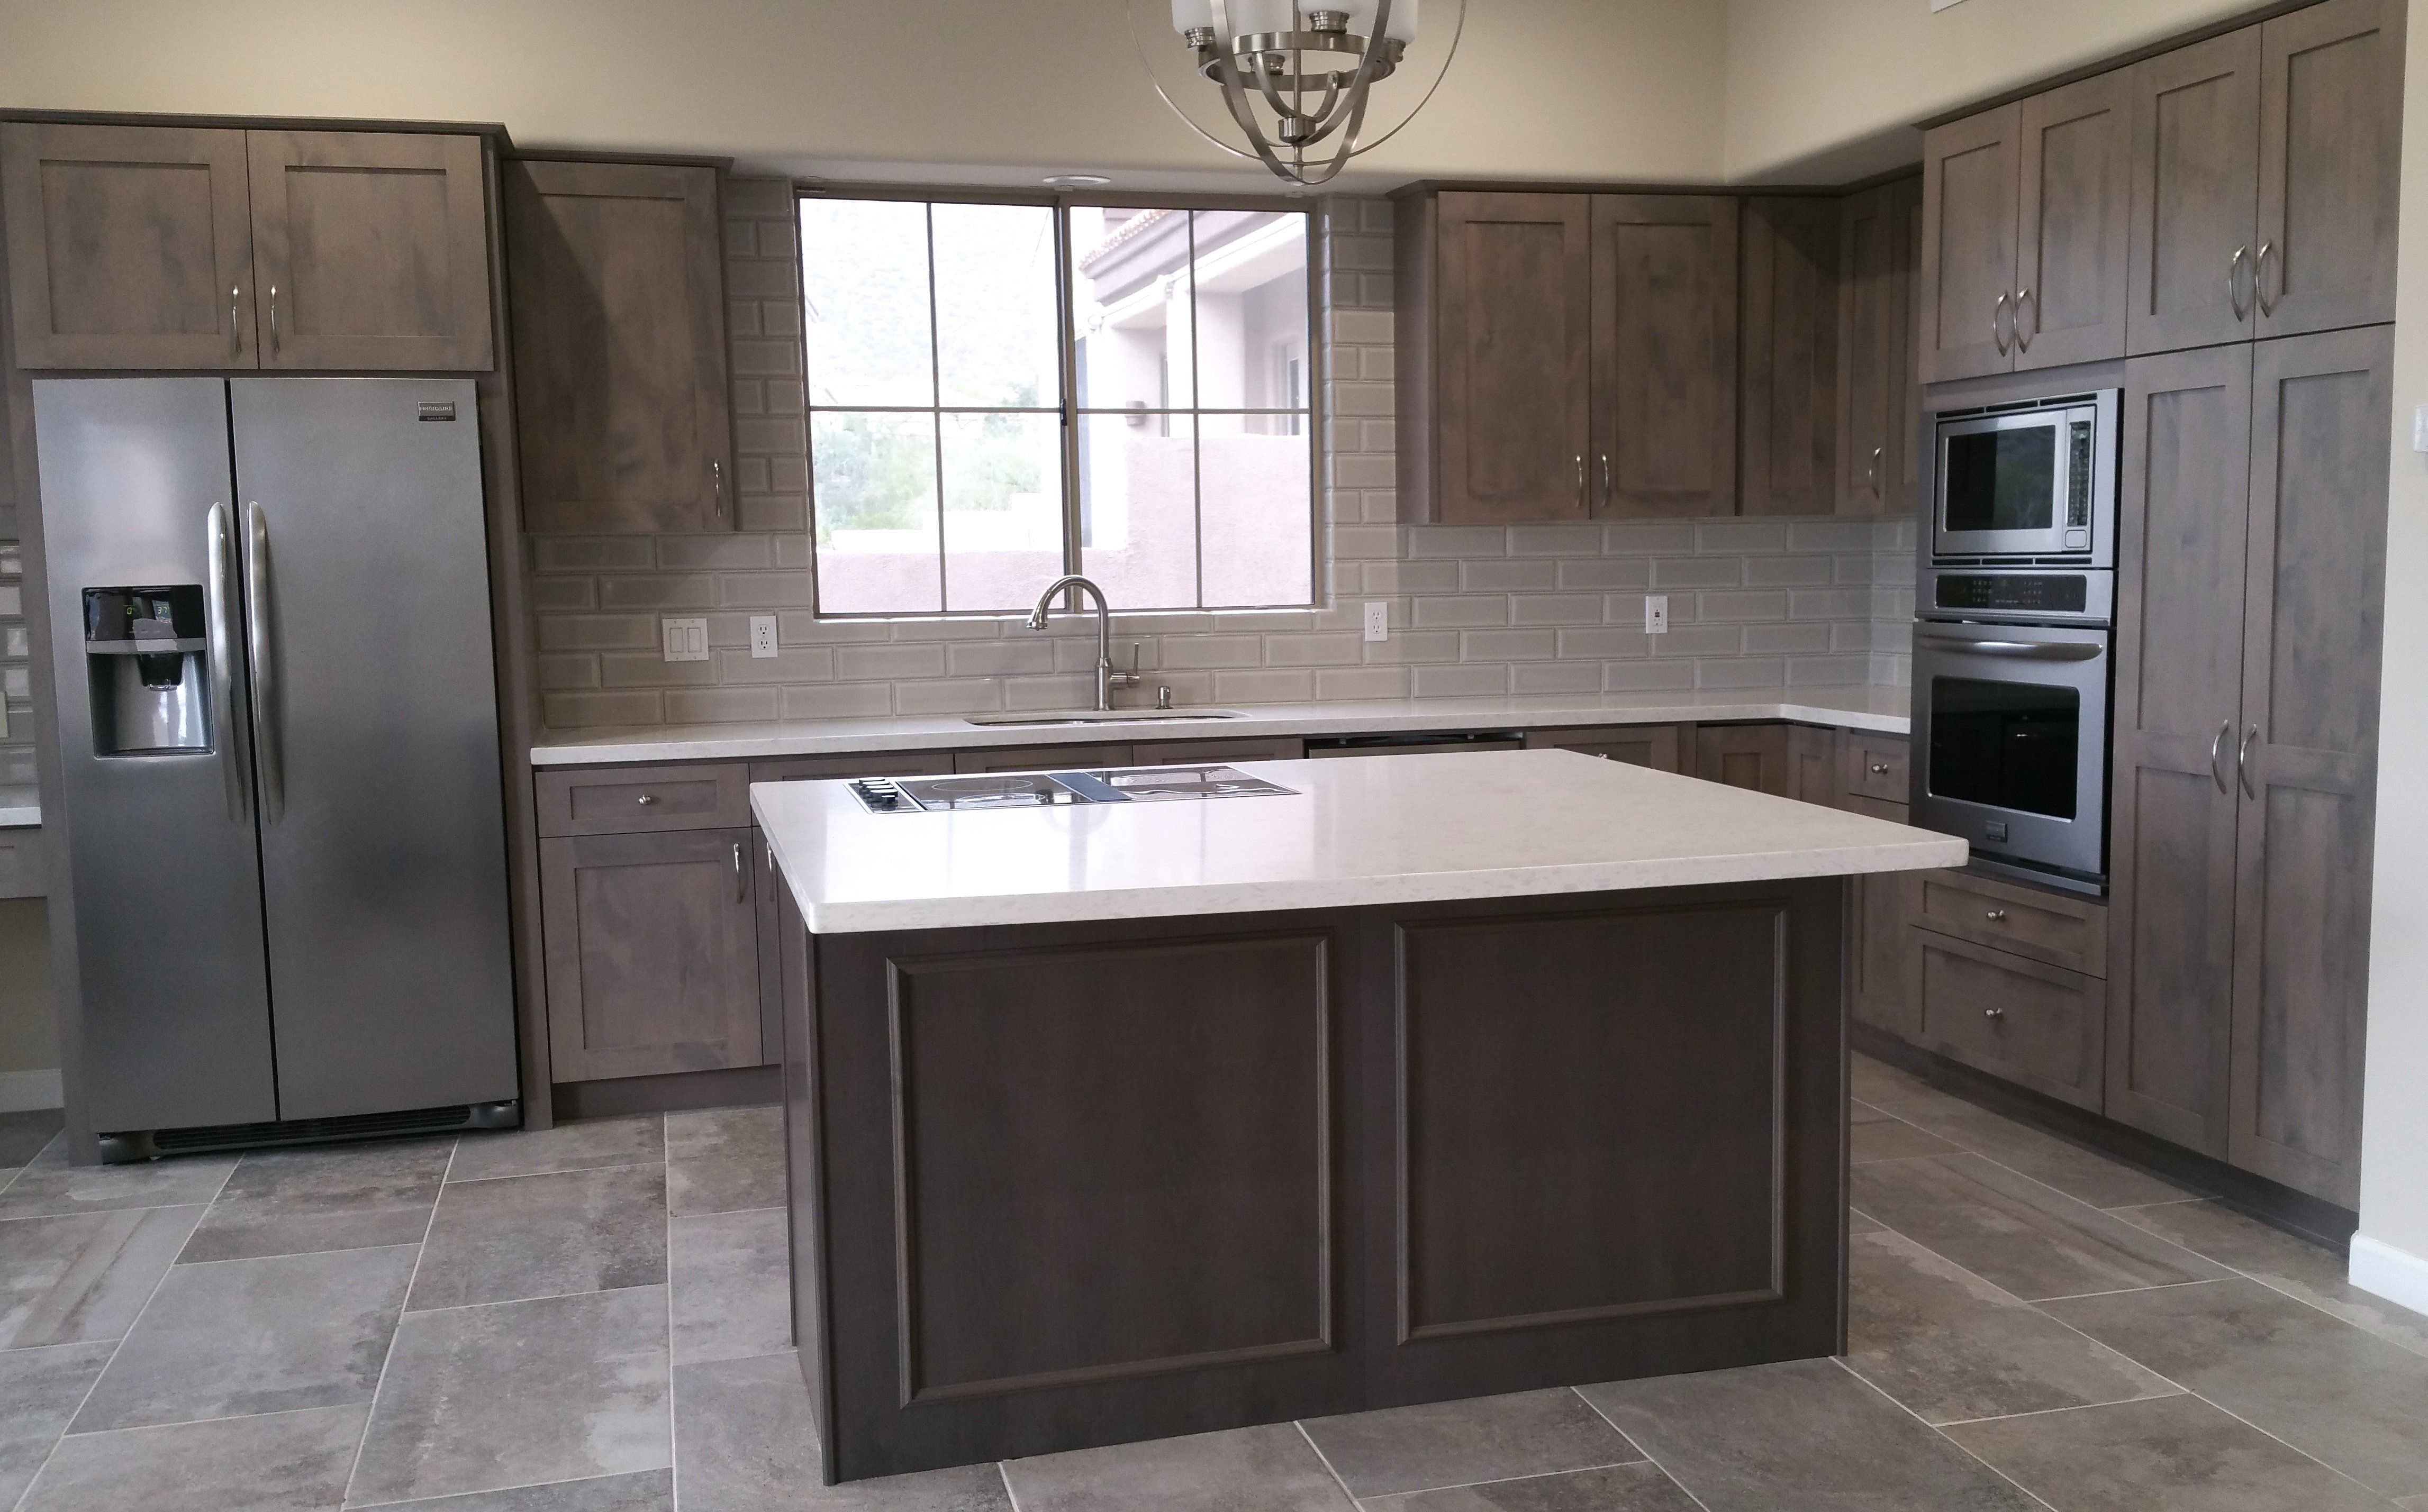 Image Of Refacing Kitchen Cabinets Design Ideas | Refacing ...